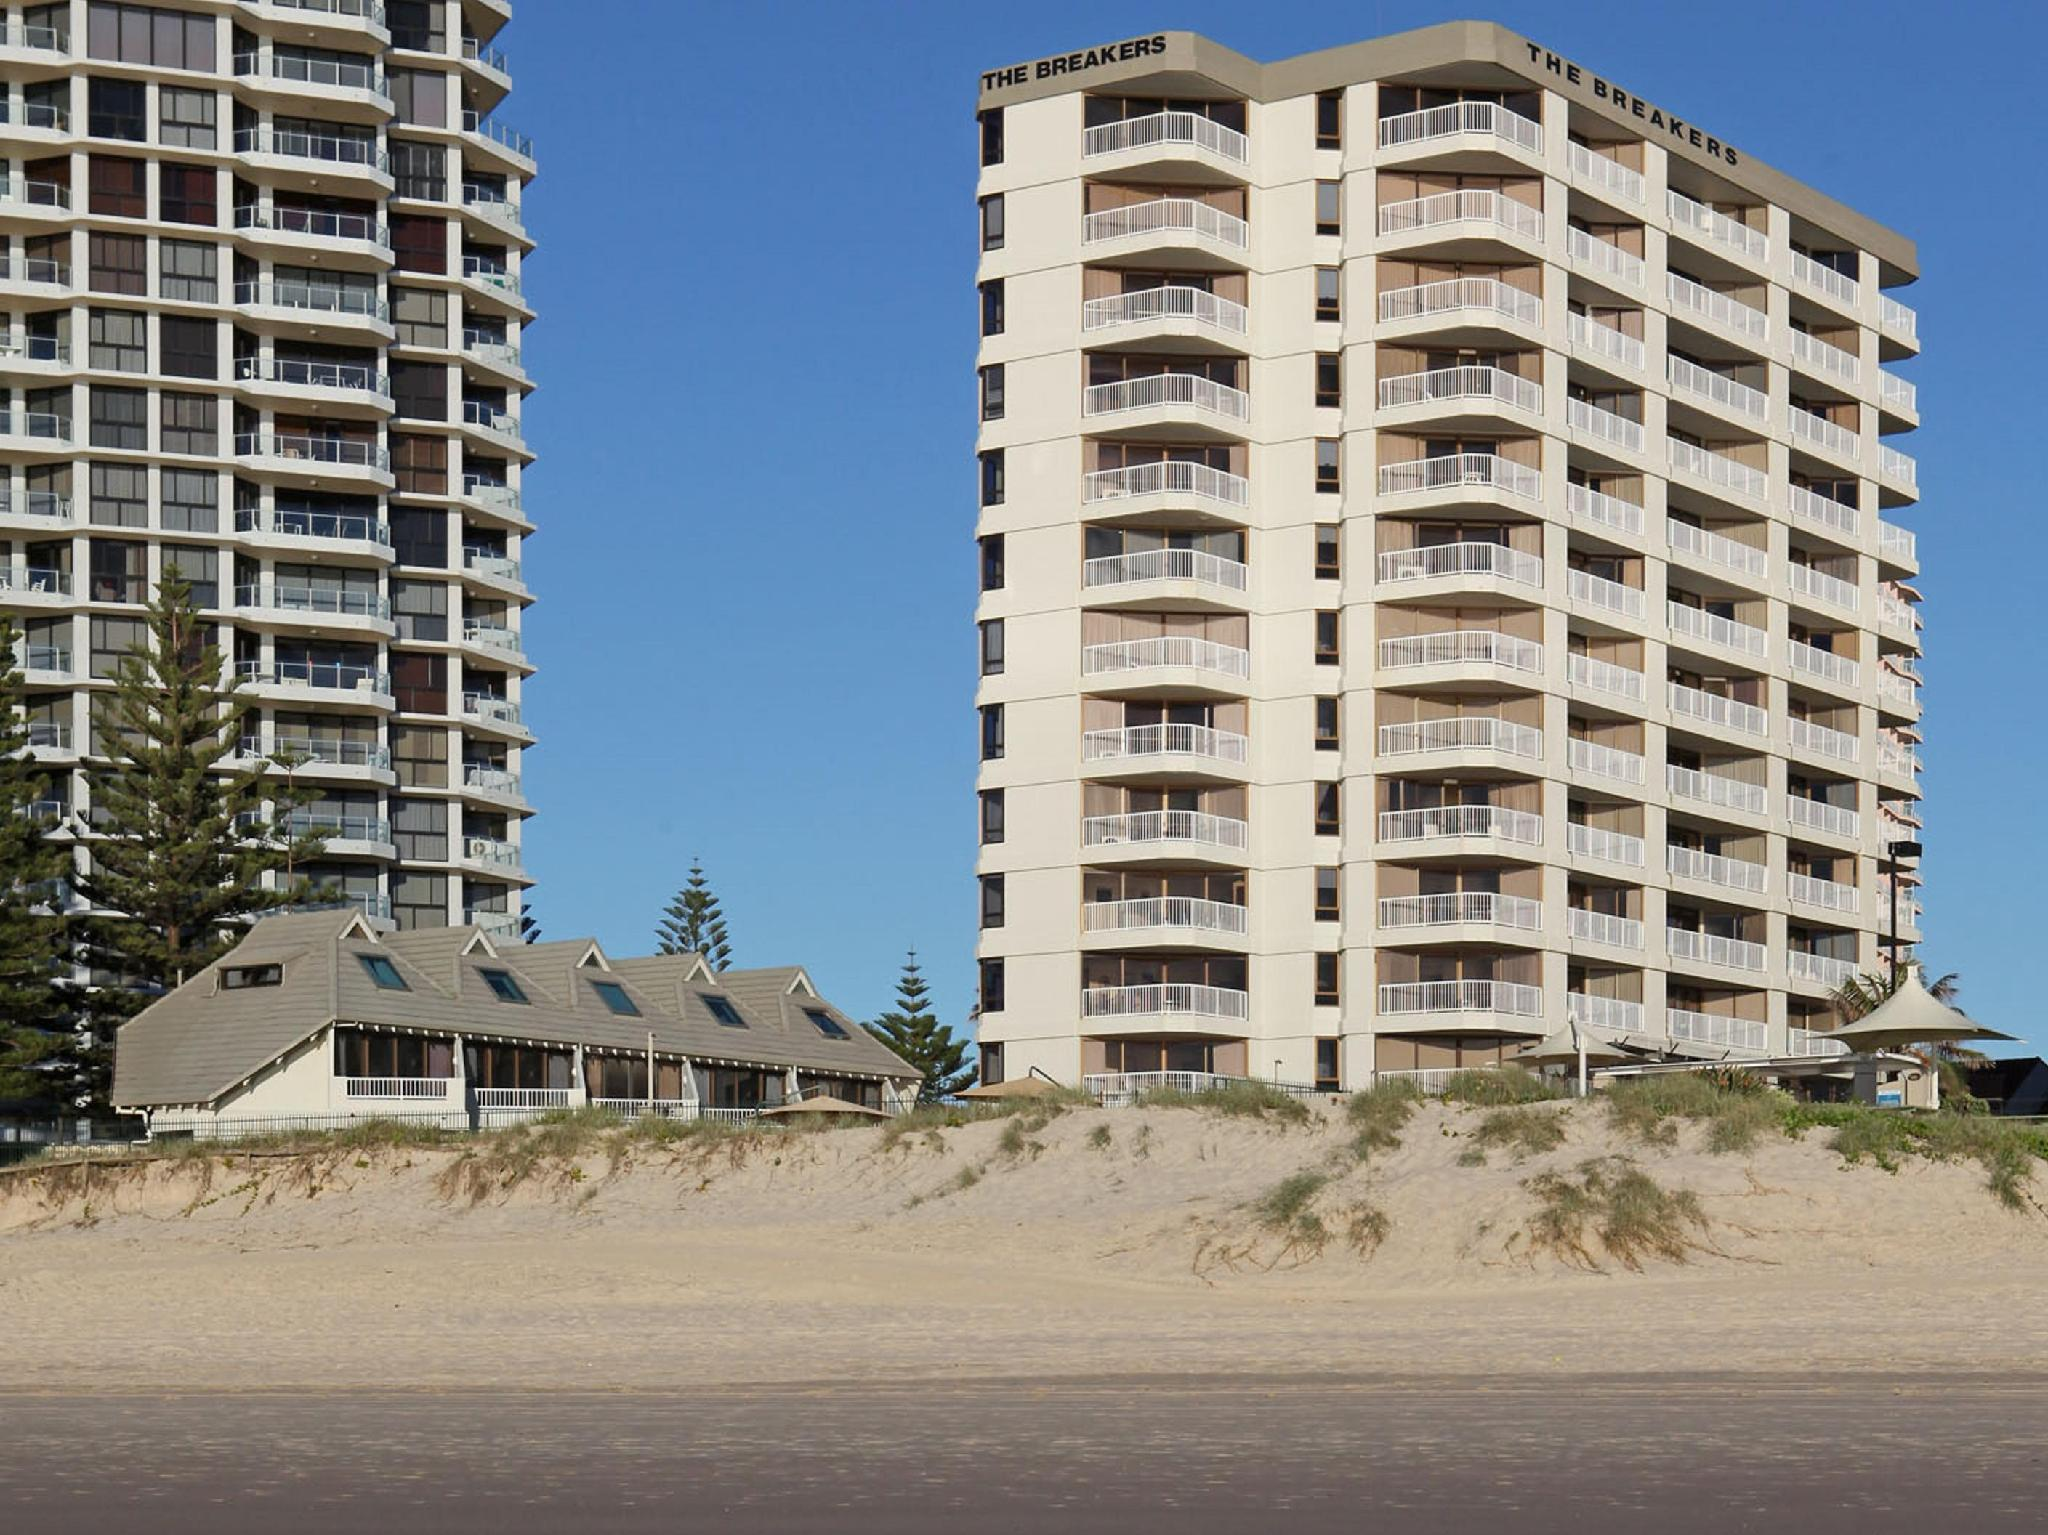 best price on the breakers holiday apartments in gold coast reviews!